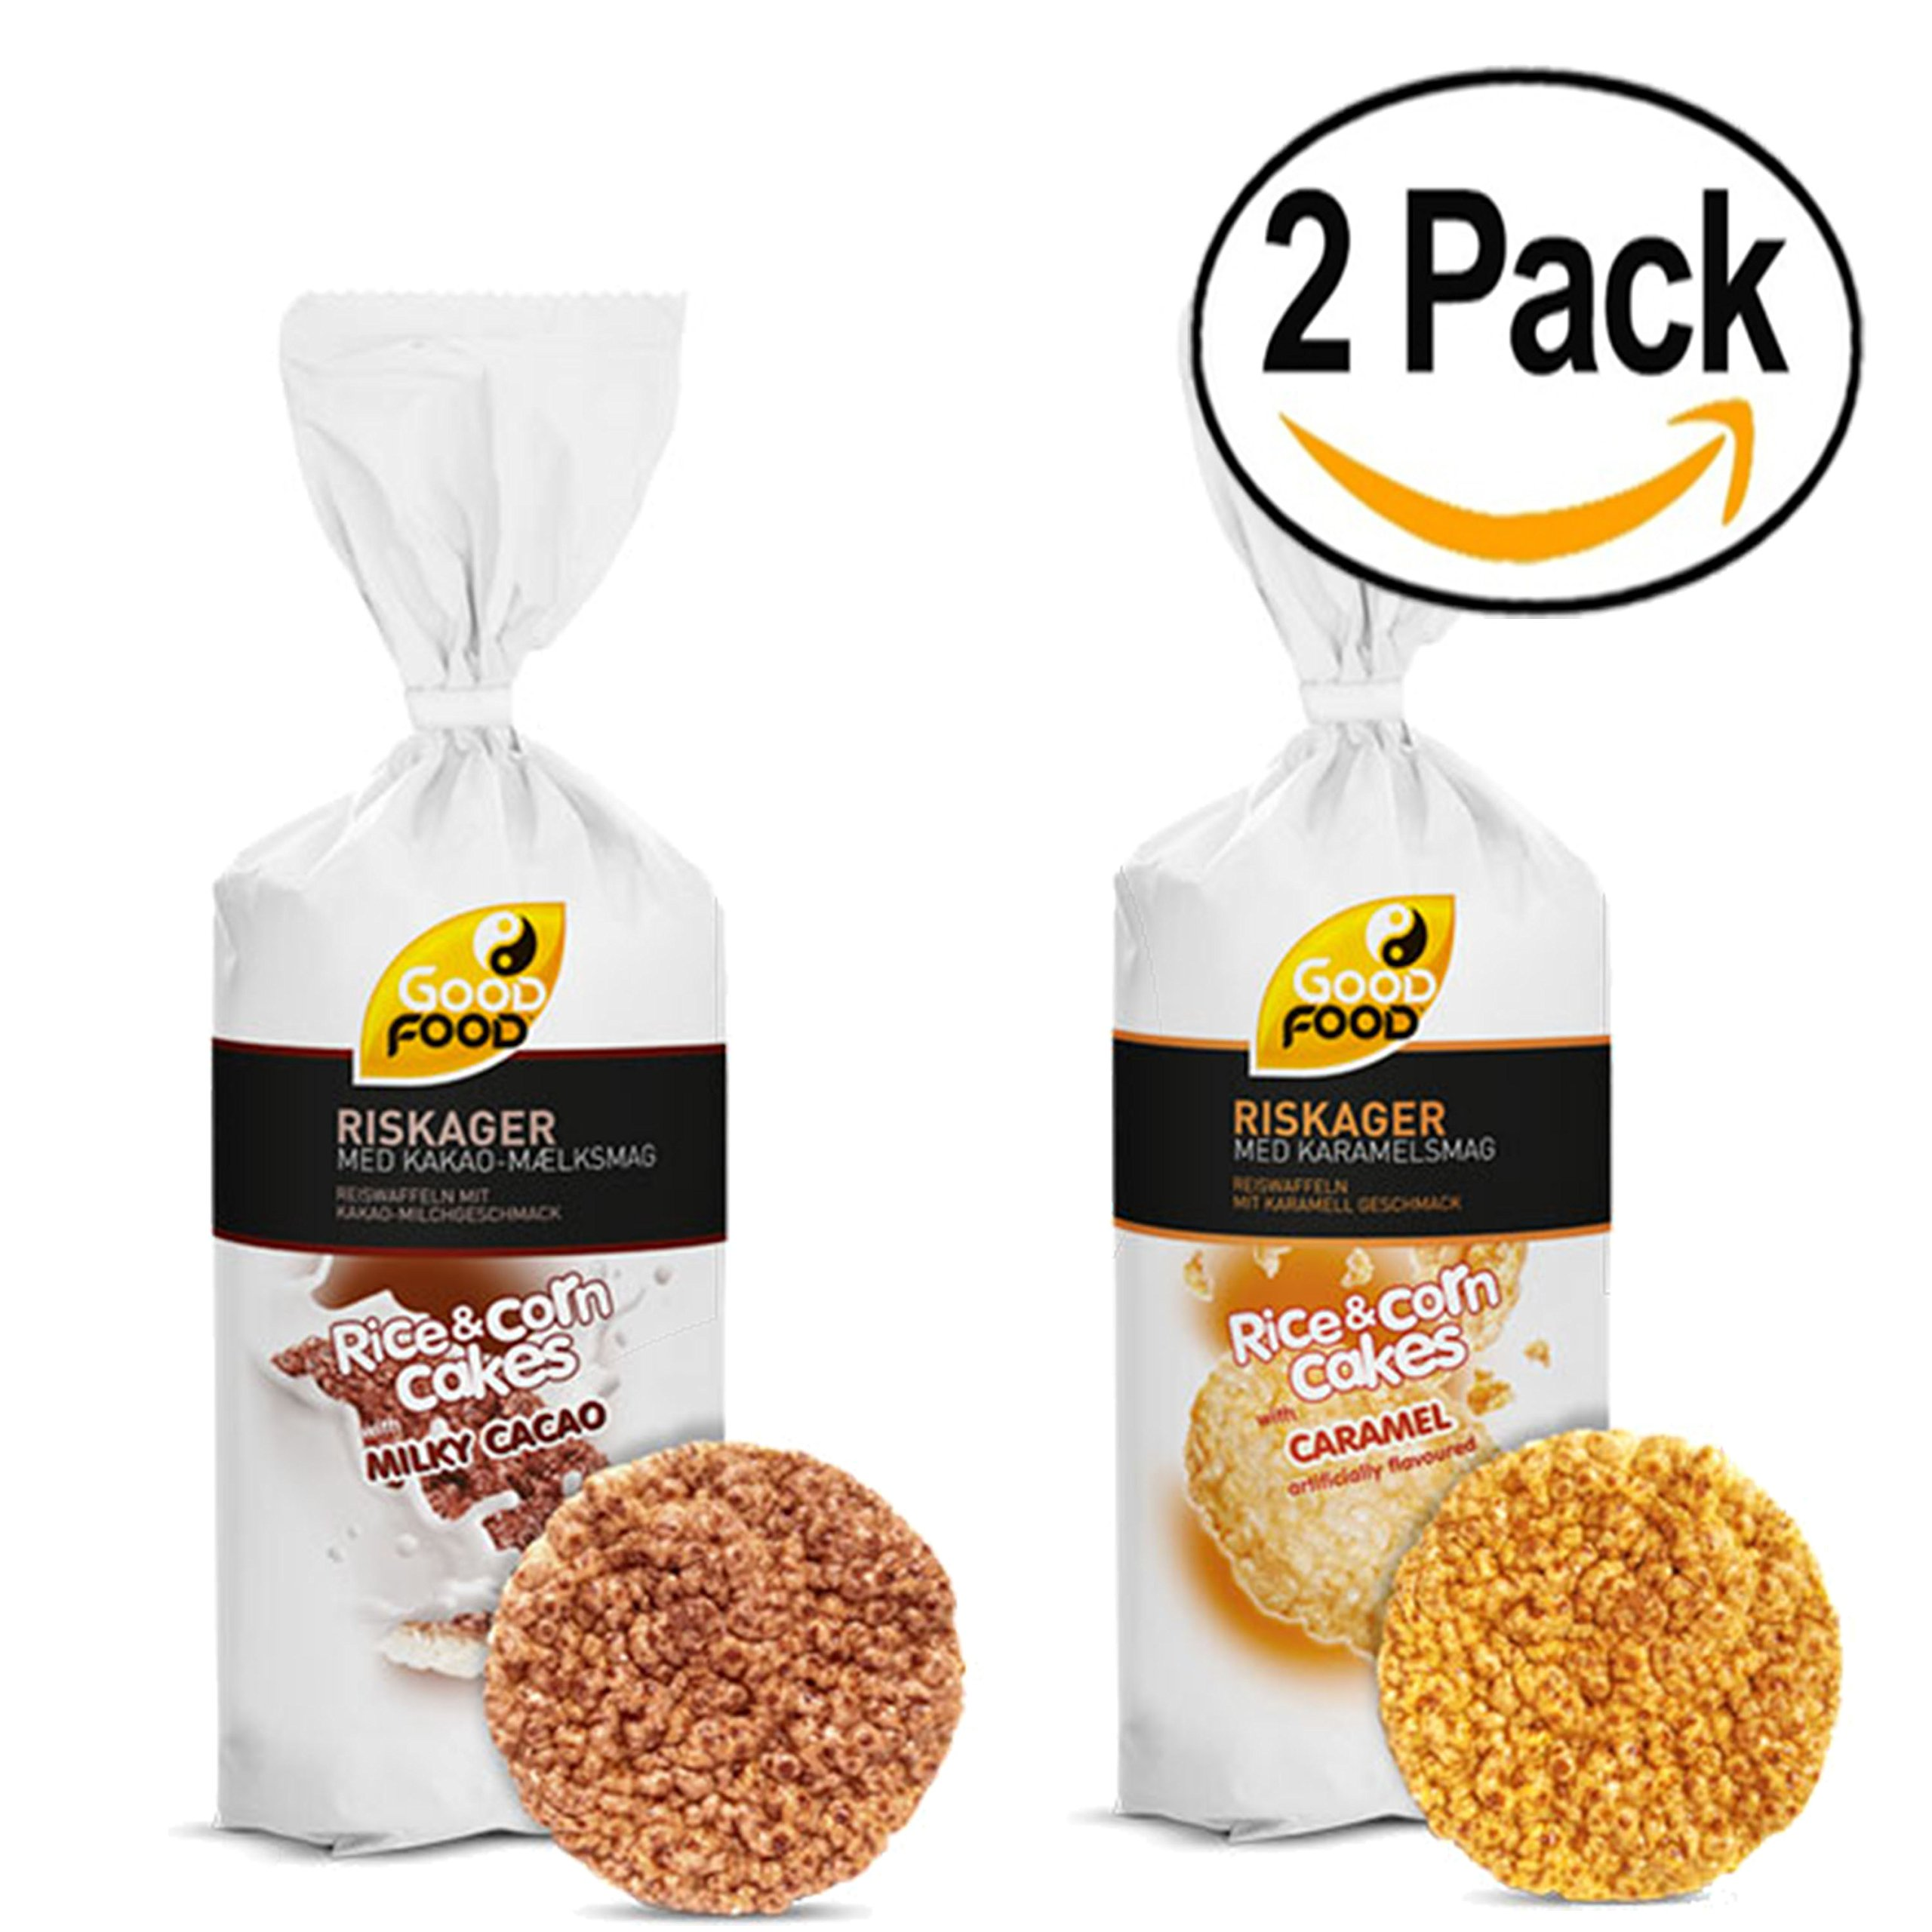 Good Food Chocolate Milk | Caramel Rice & Corn Cakes BUNDLE Pack of 2 5.11oz Each